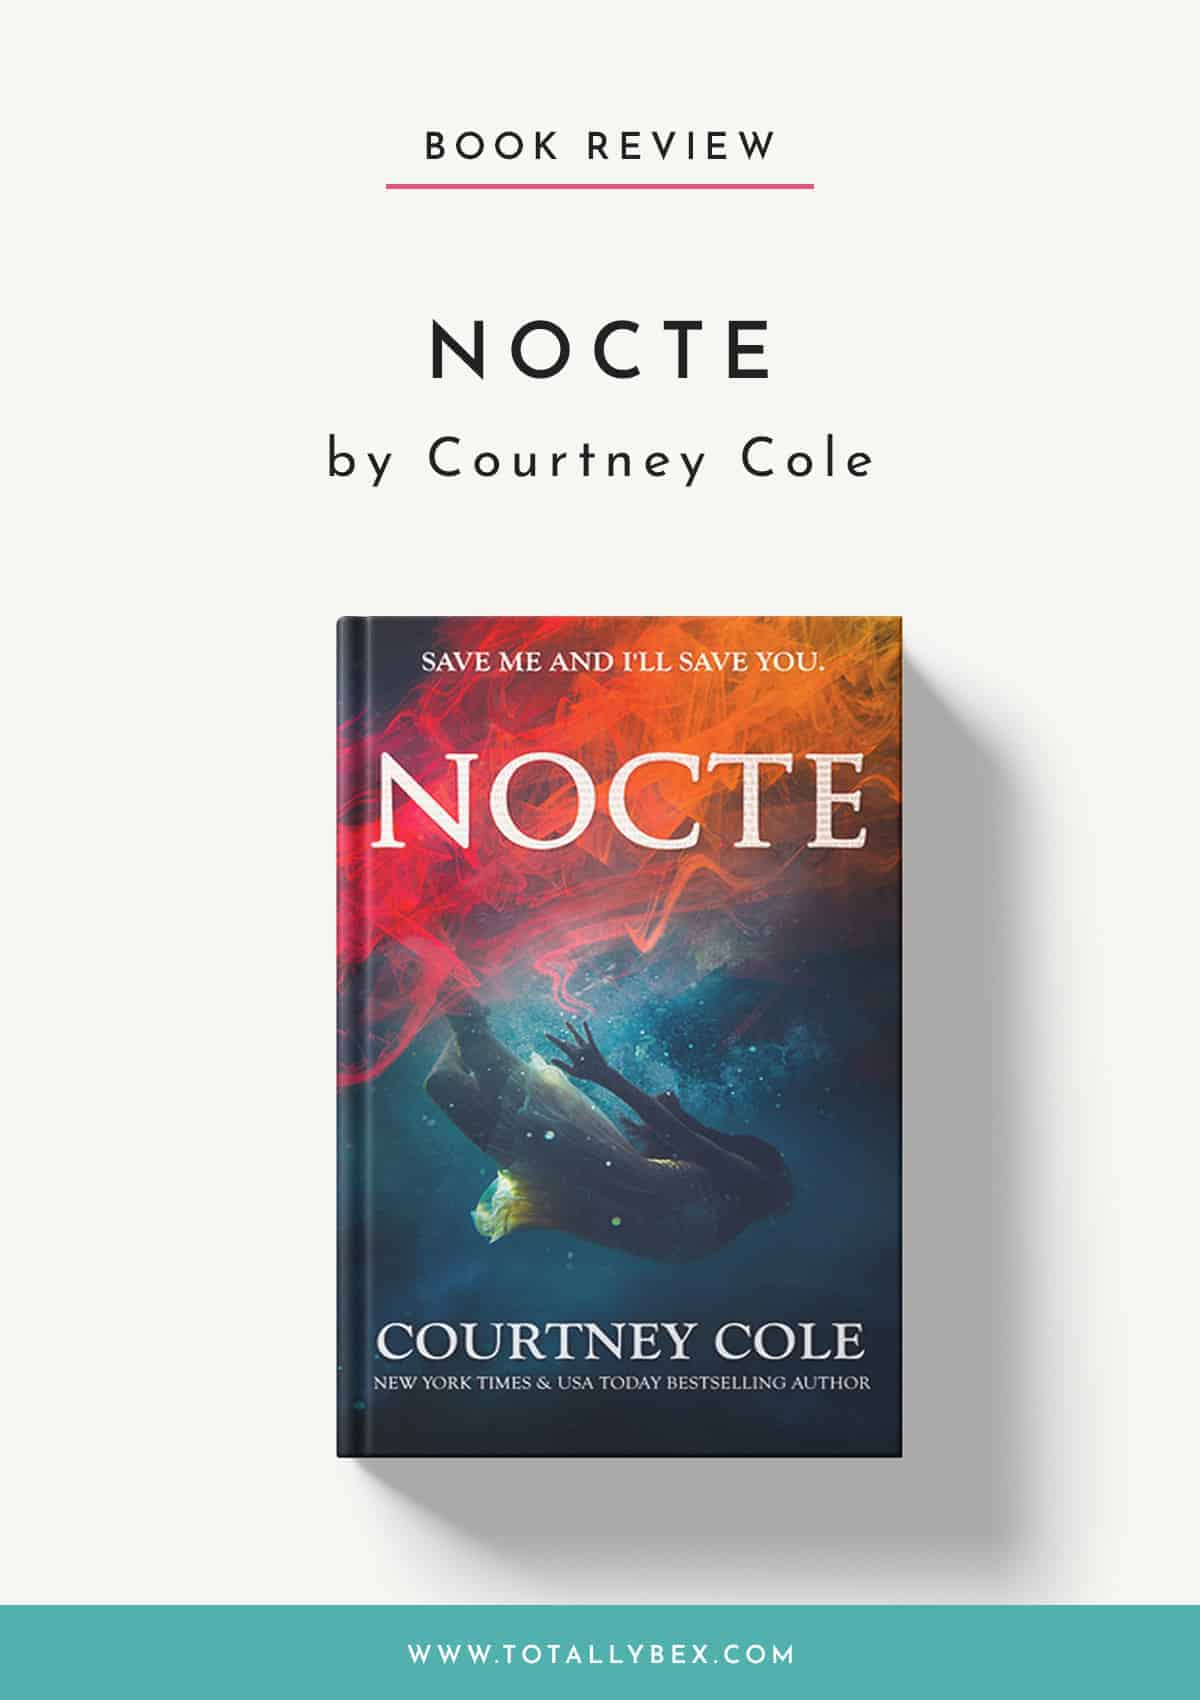 Nocte by Courtney Cole-Book Review